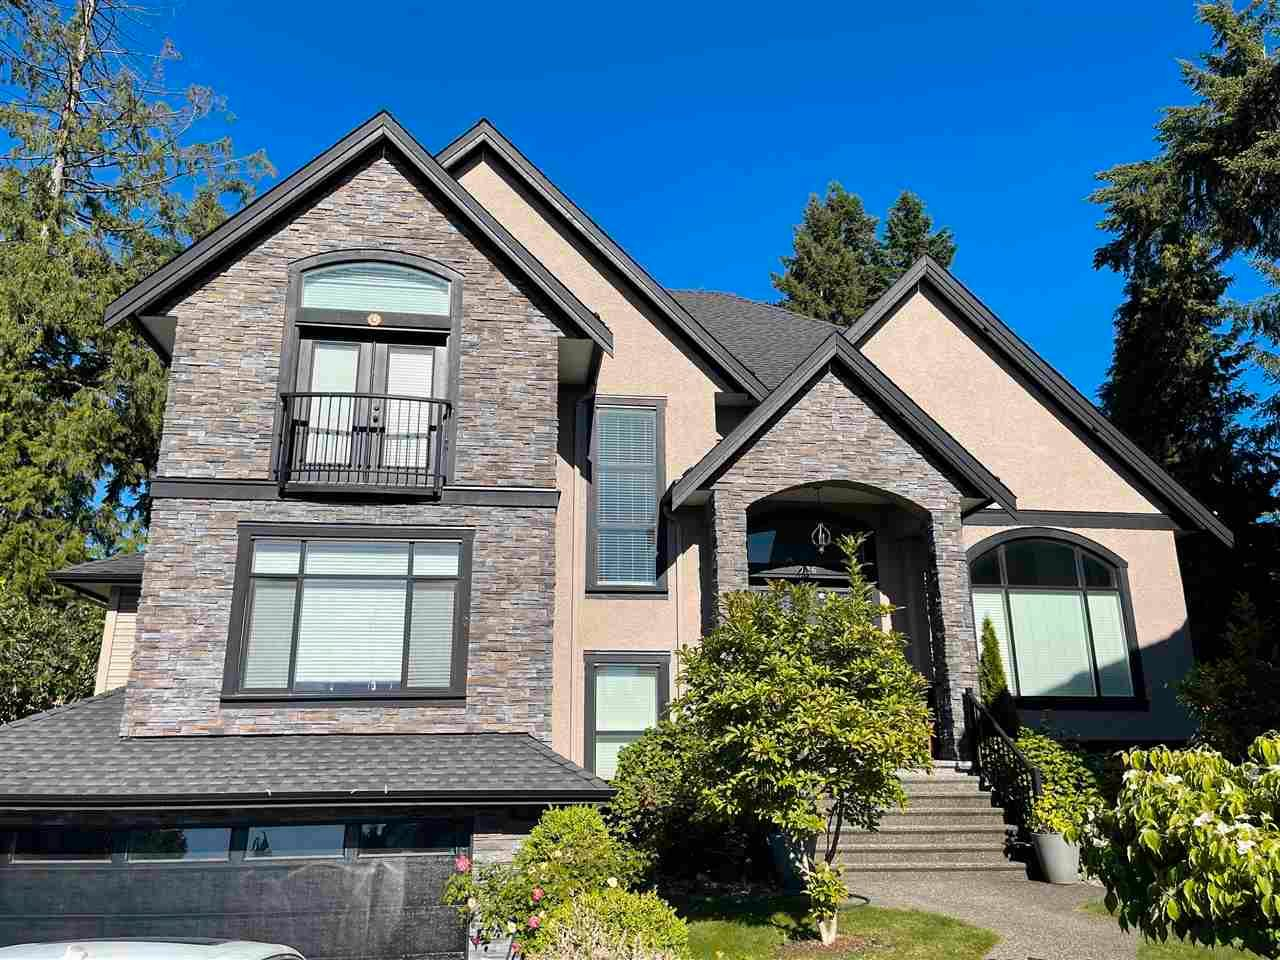 Main Photo: 726 GROVER Avenue in Coquitlam: Coquitlam West House for sale : MLS®# R2588101